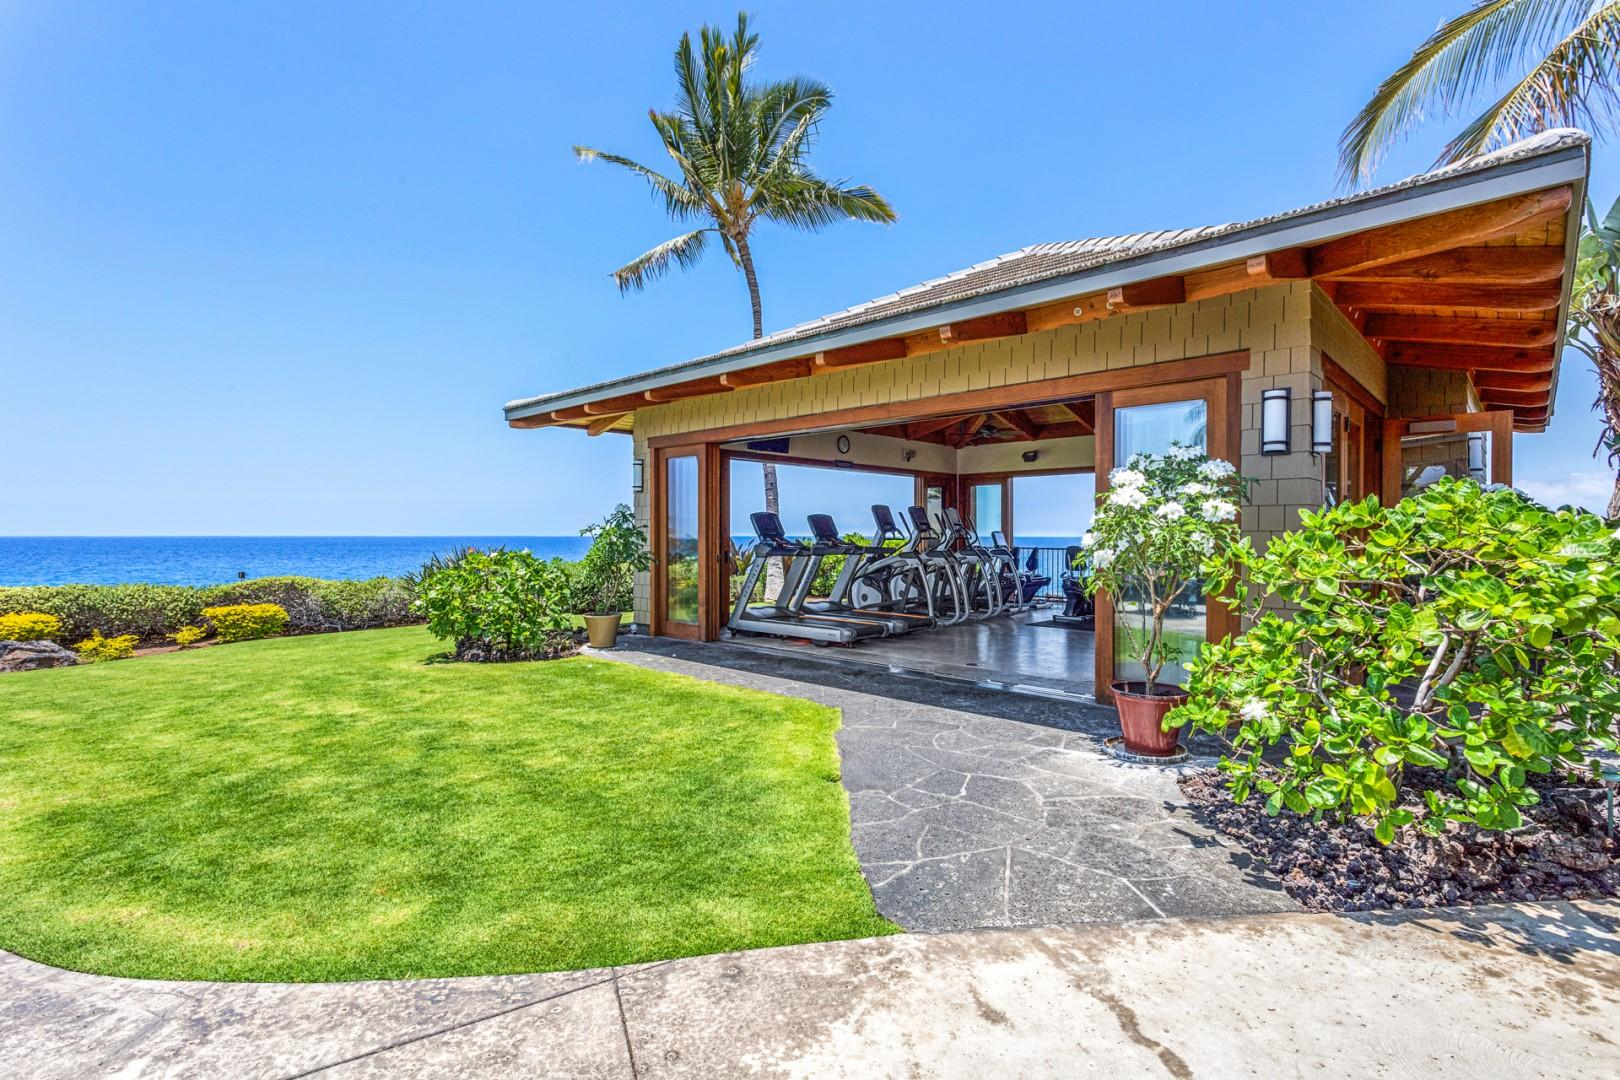 Hali'i Kai's epic open air fitness center with panoramic ocean and coastline views.